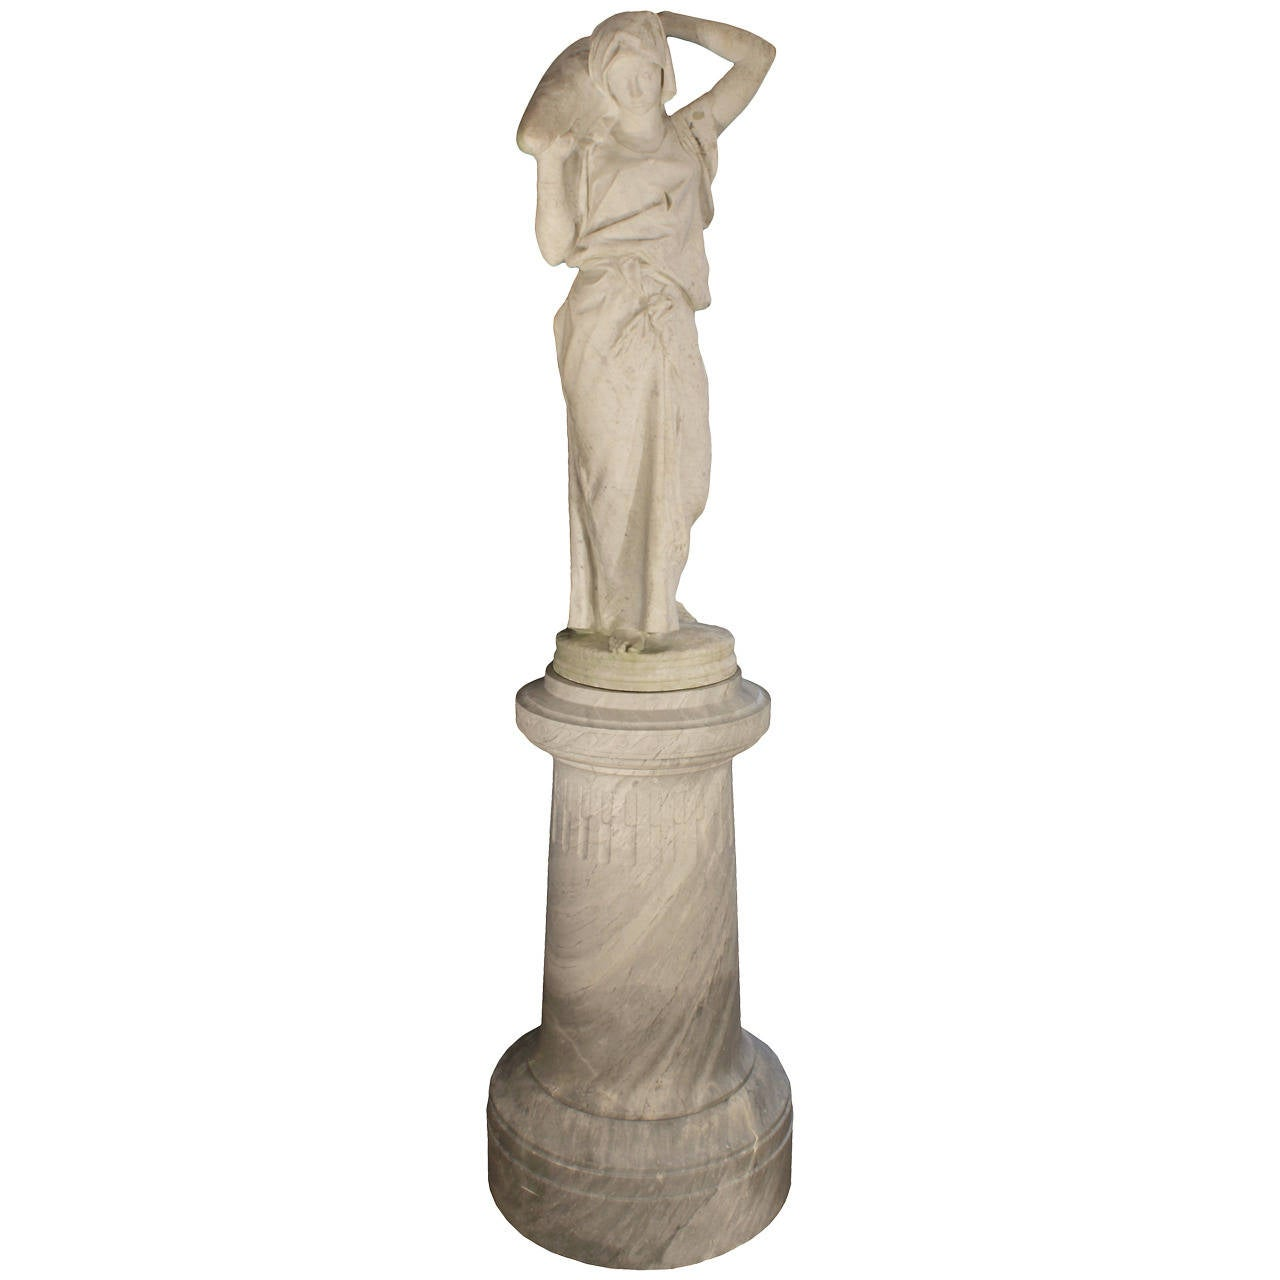 Italian 19th Century White Carrara Marble Statue Signed A Lazzarini